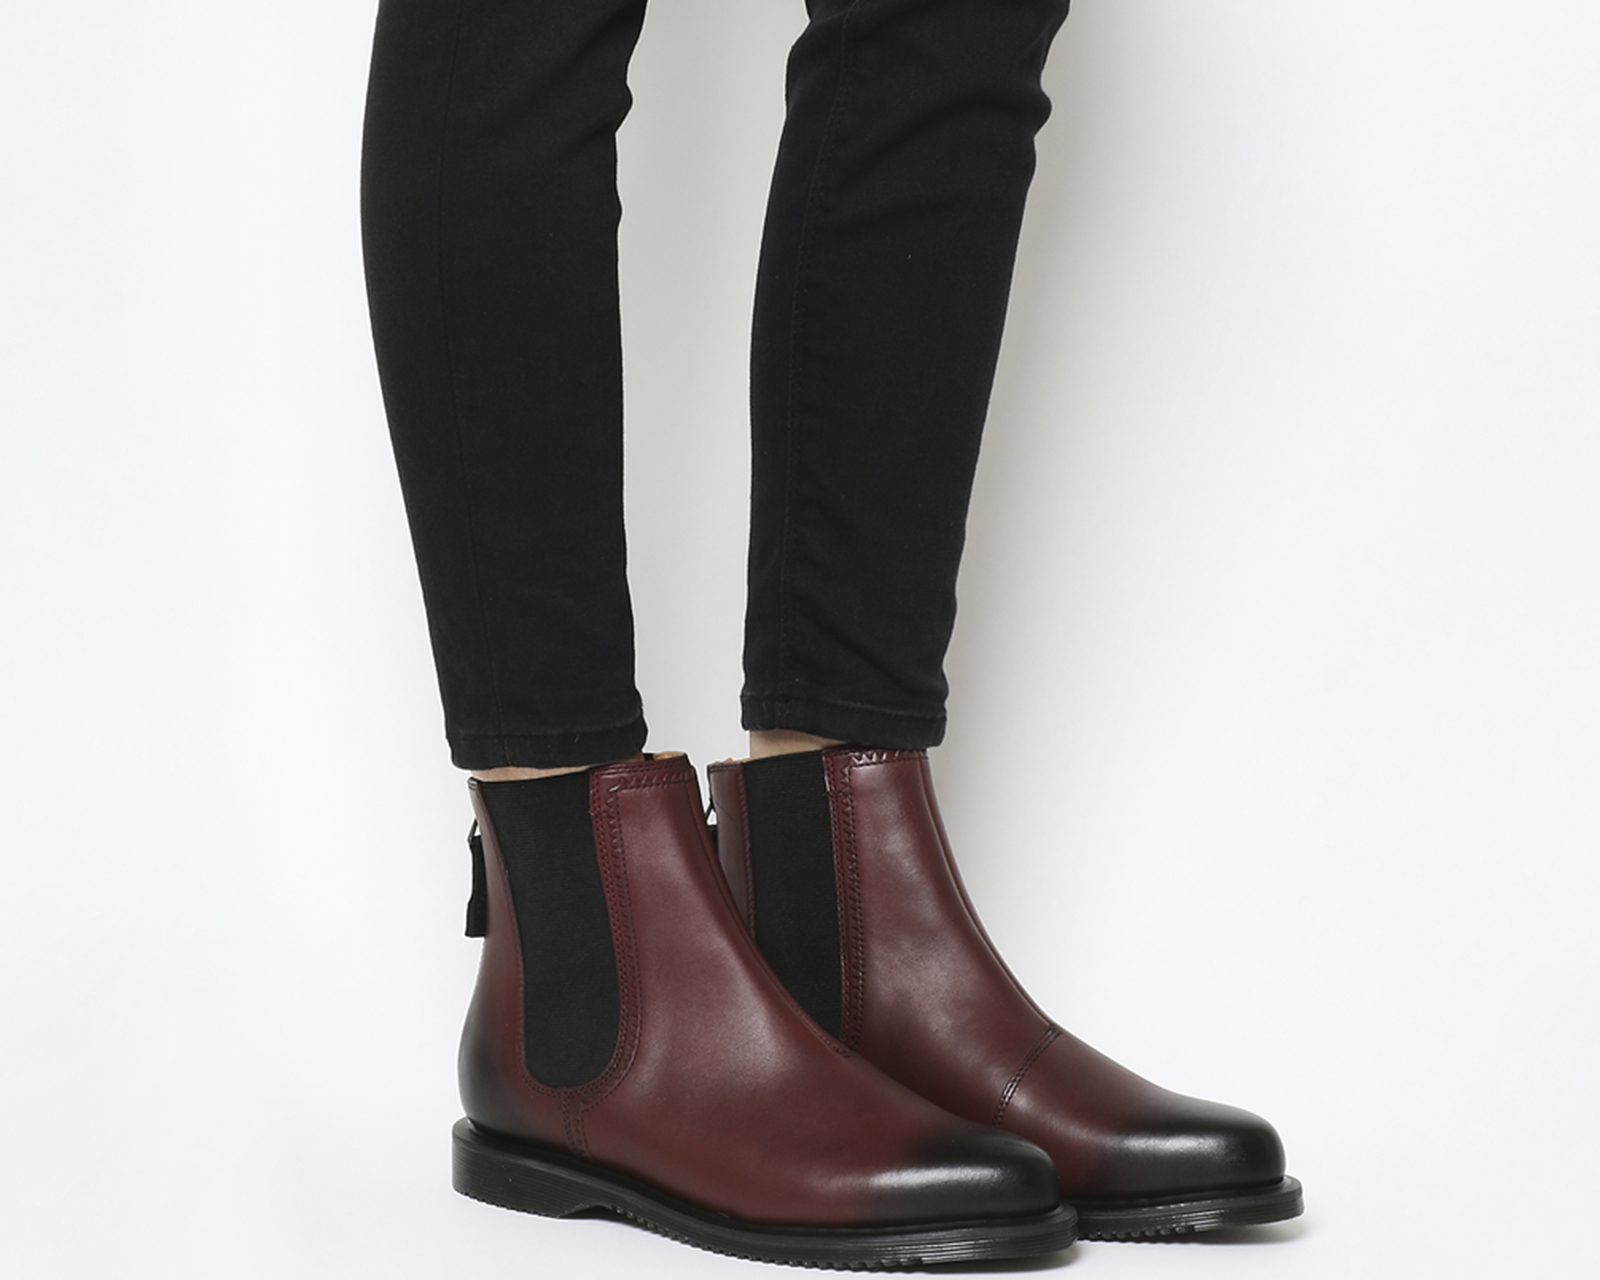 dc990ae2ec3 Sentinel Womens Dr. Martens Zillow Chelsea Boots Cherry Red Boots